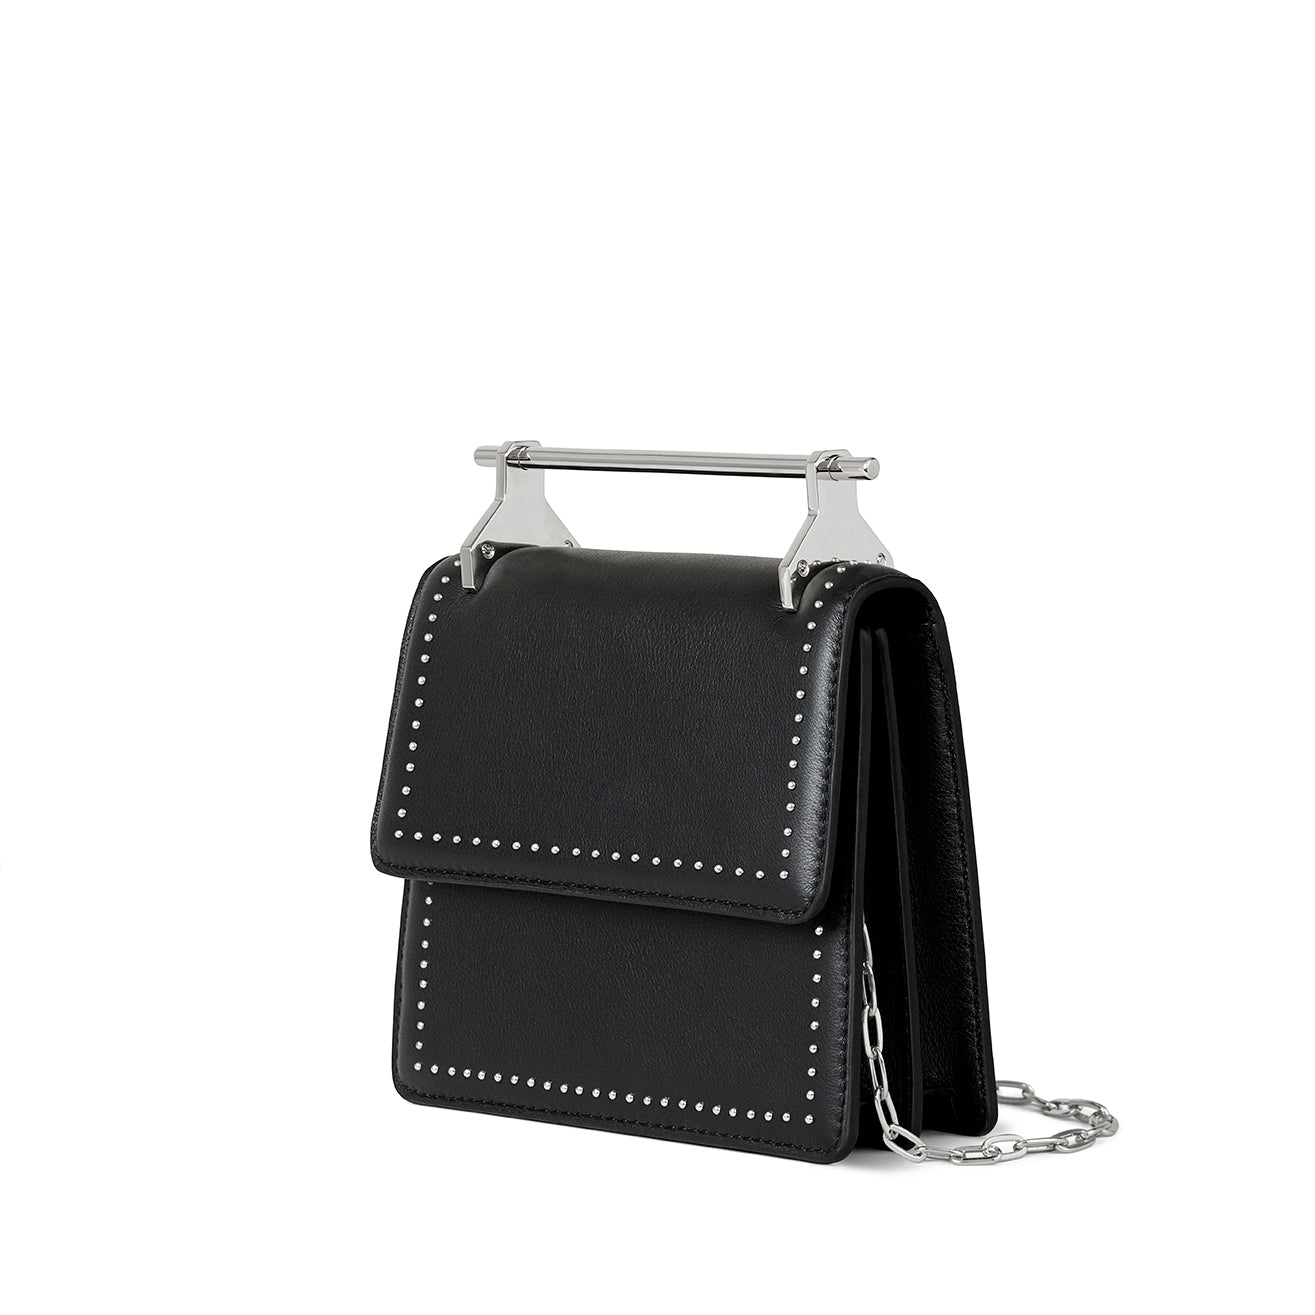 Mini Collectionneuse Black With Silver Studs